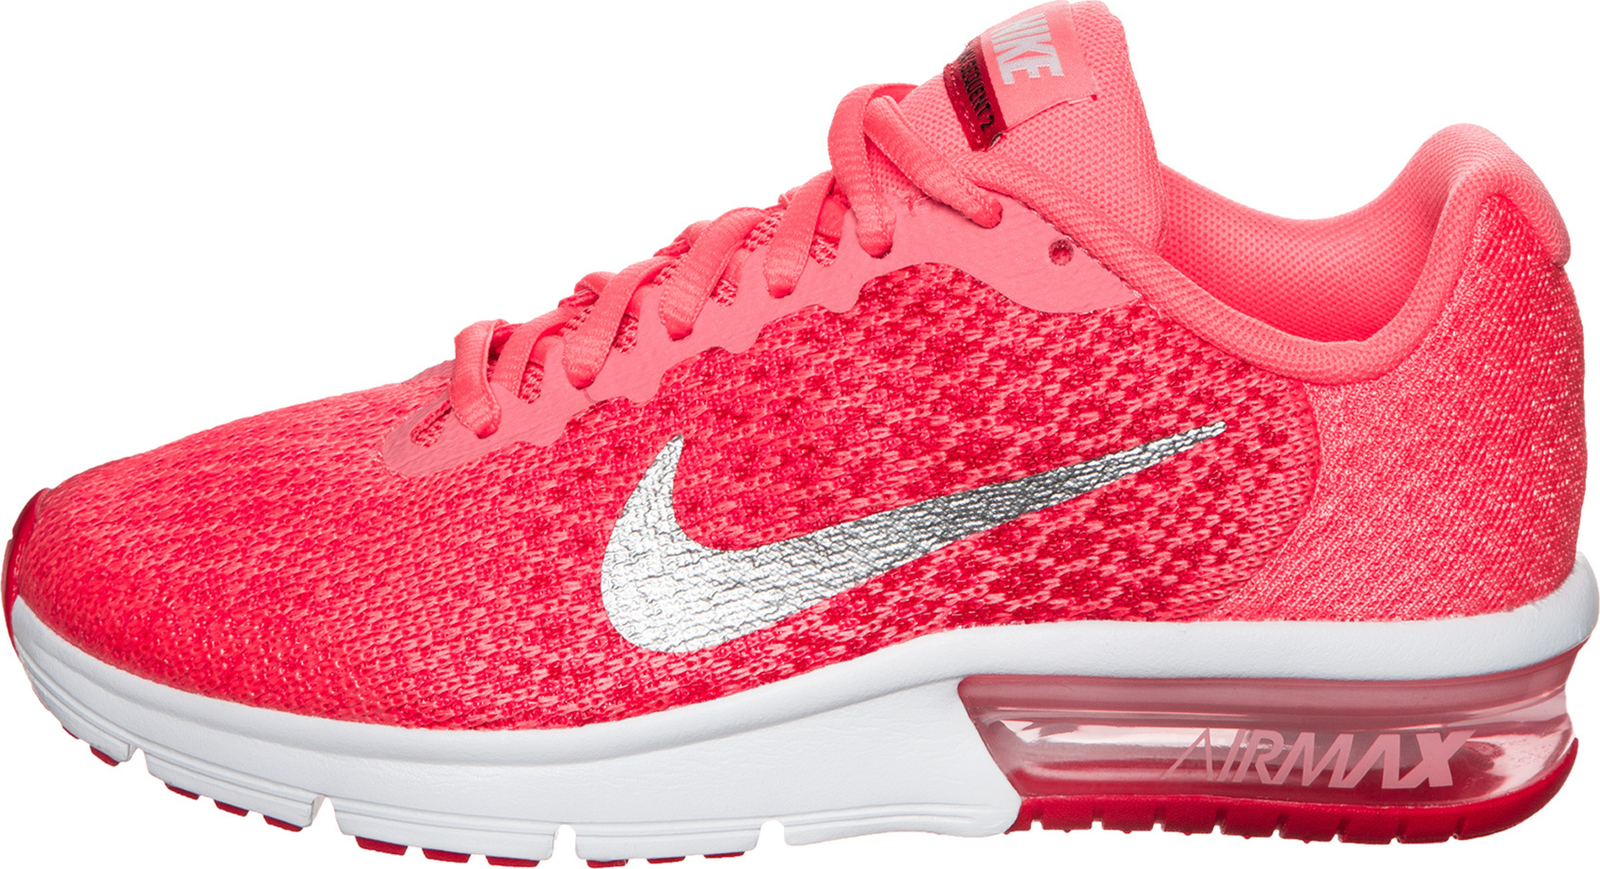 174e18a3a1d nike air max - Αθλητικά Παιδικά Παπούτσια Nike - Skroutz.gr